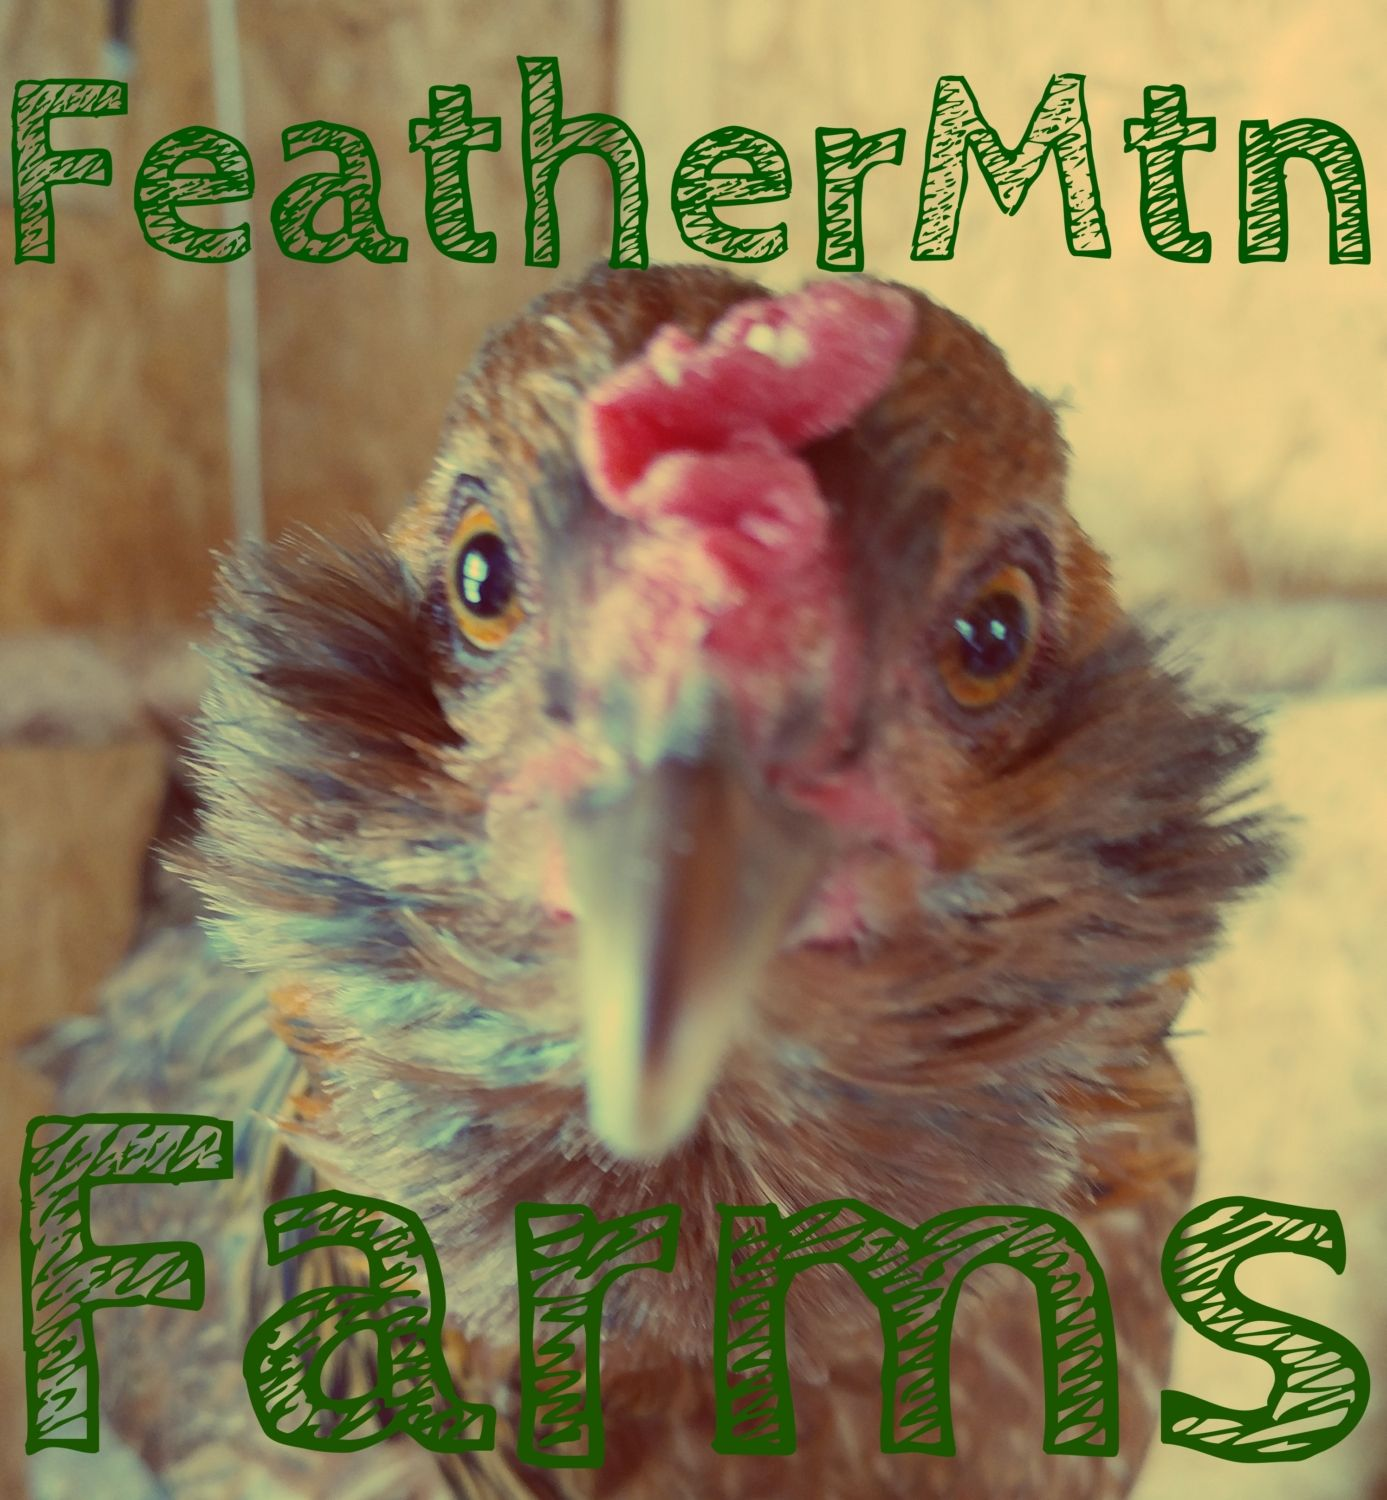 FeatherMtnFarms